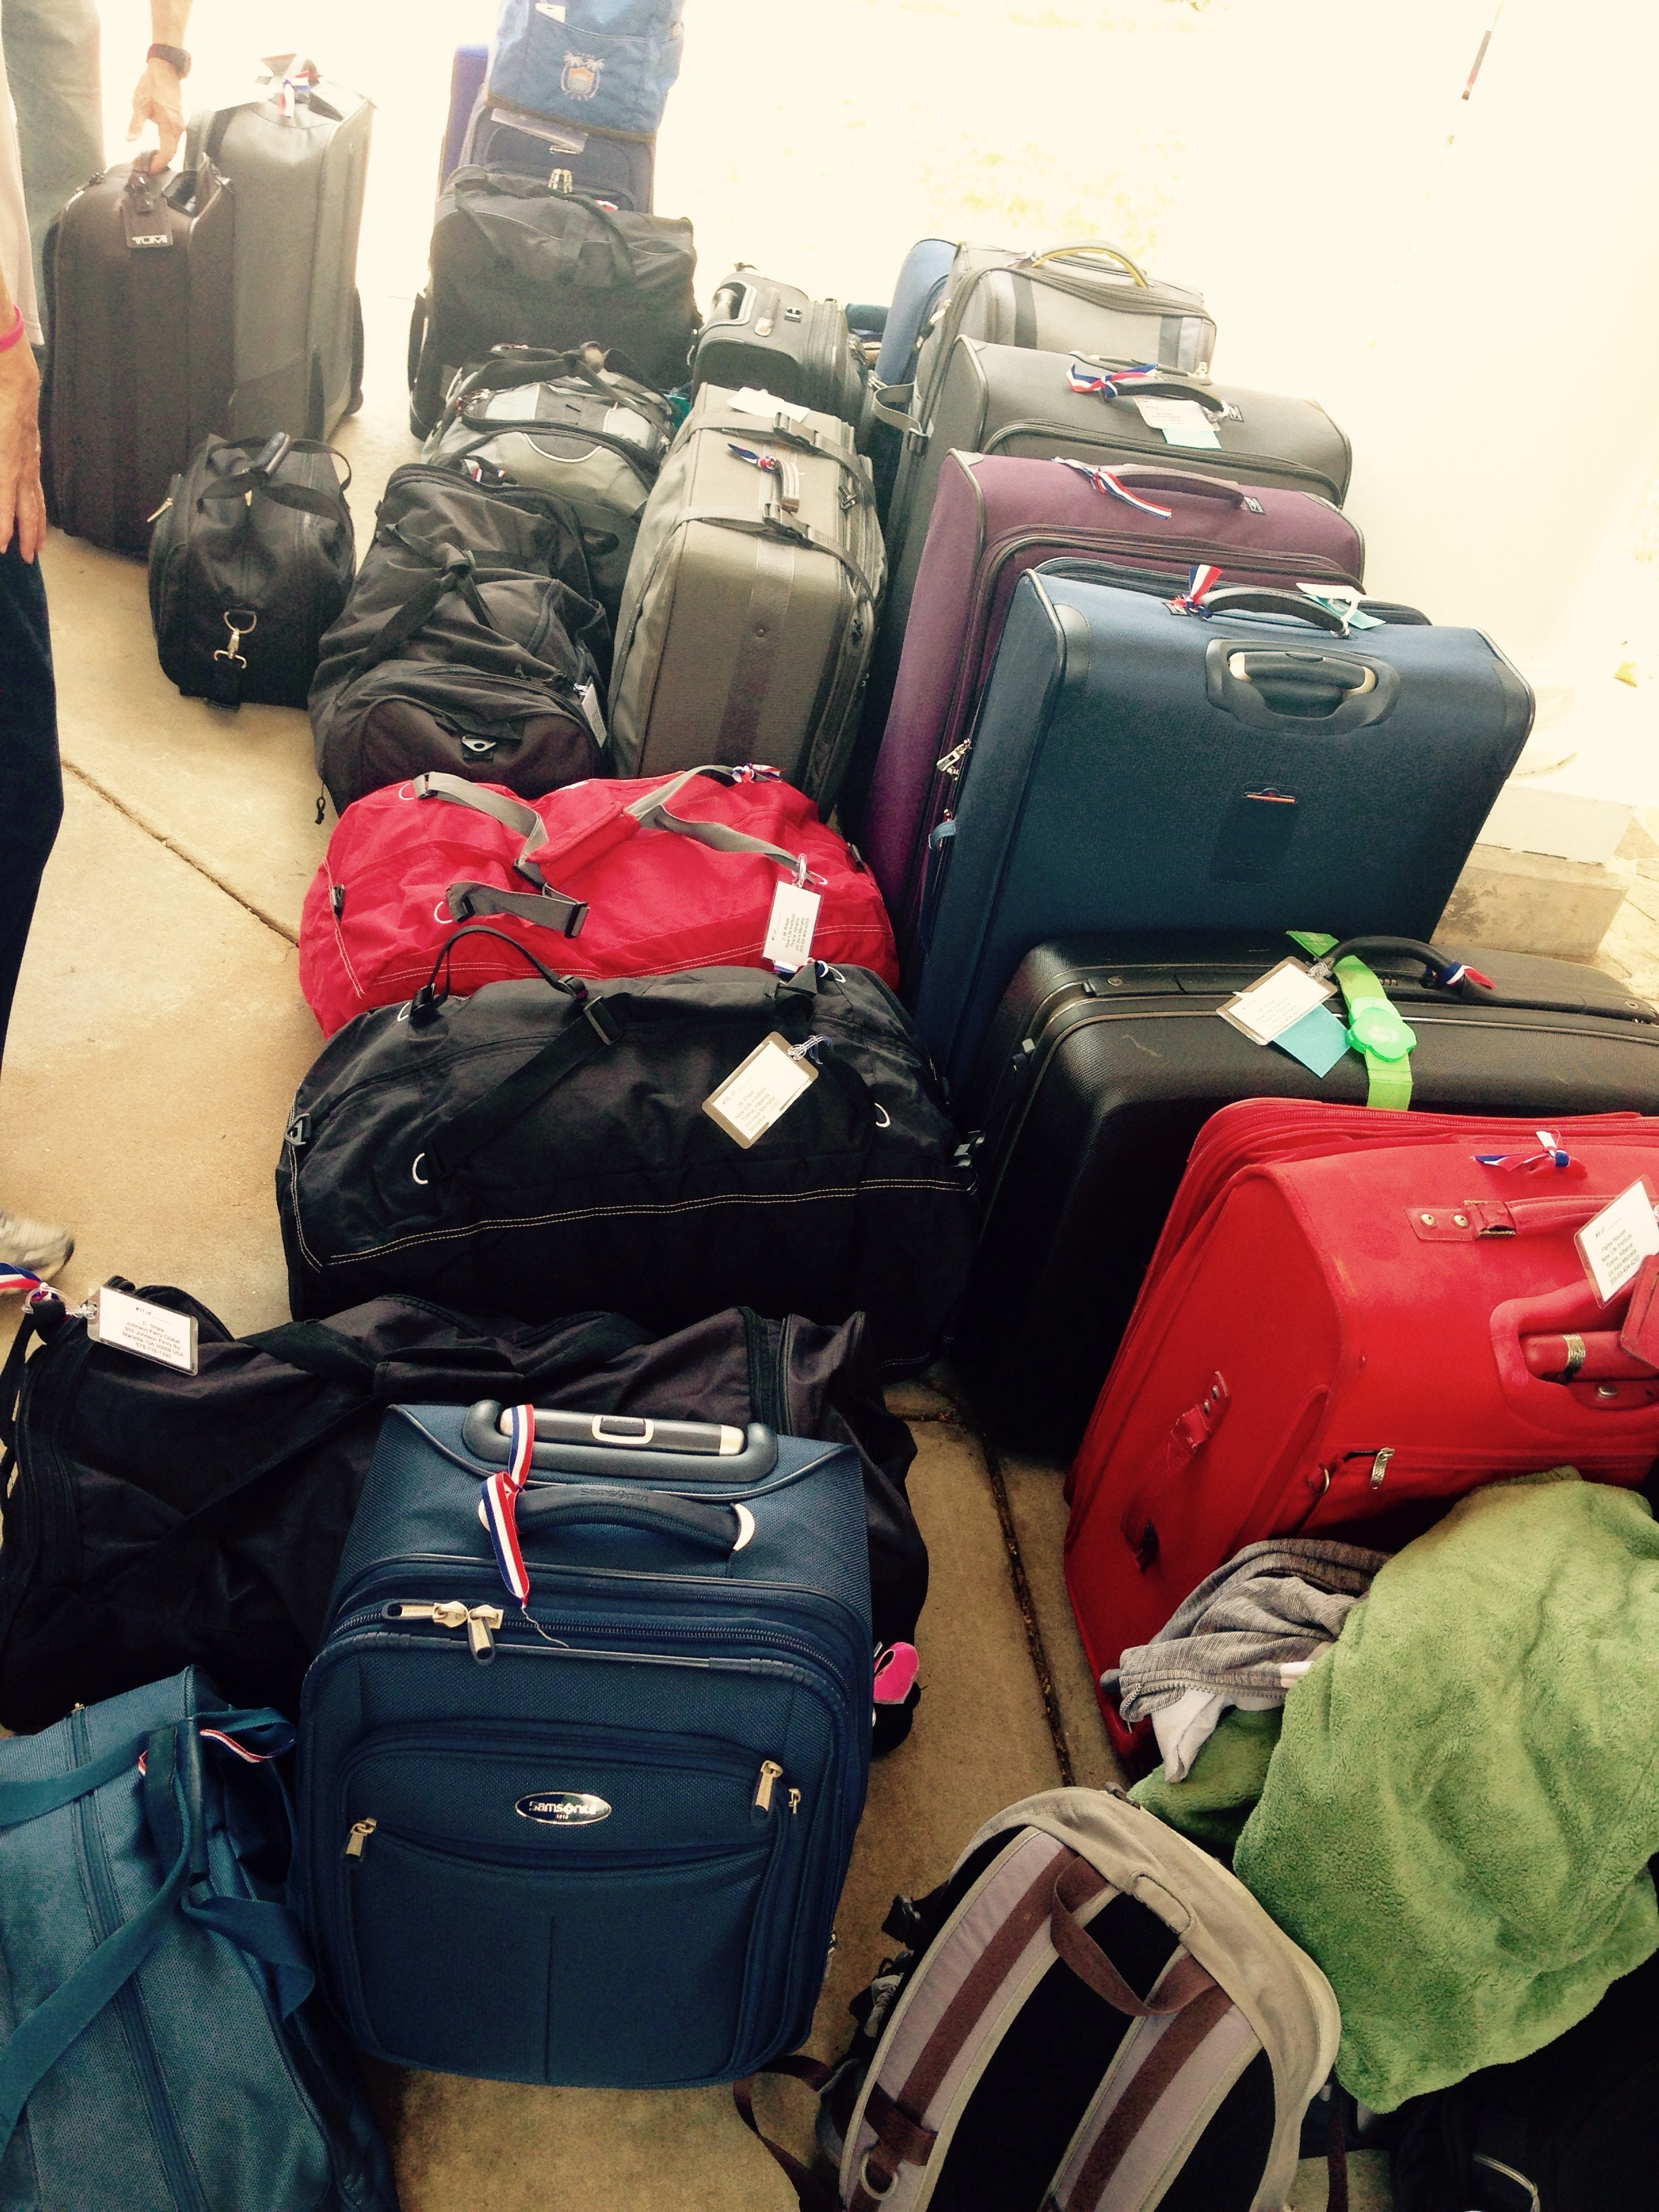 21 checked bags, 12 personal carry-ons, and at least 5 regular carry-ons